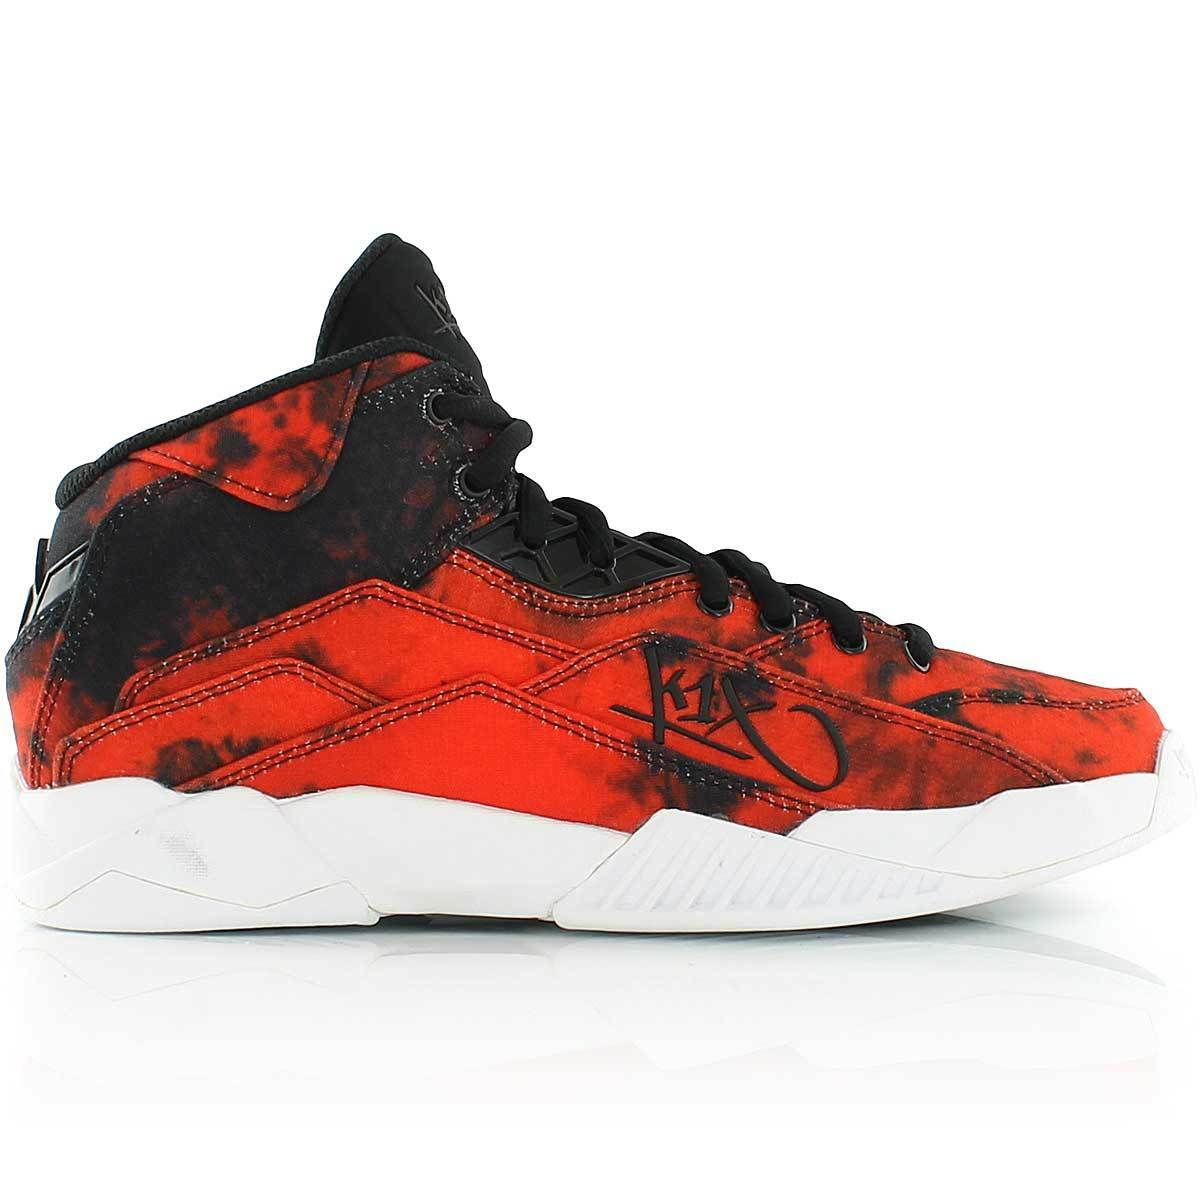 K1X anti Gravity Red Tiedye Basketball shoes Red mid Cut